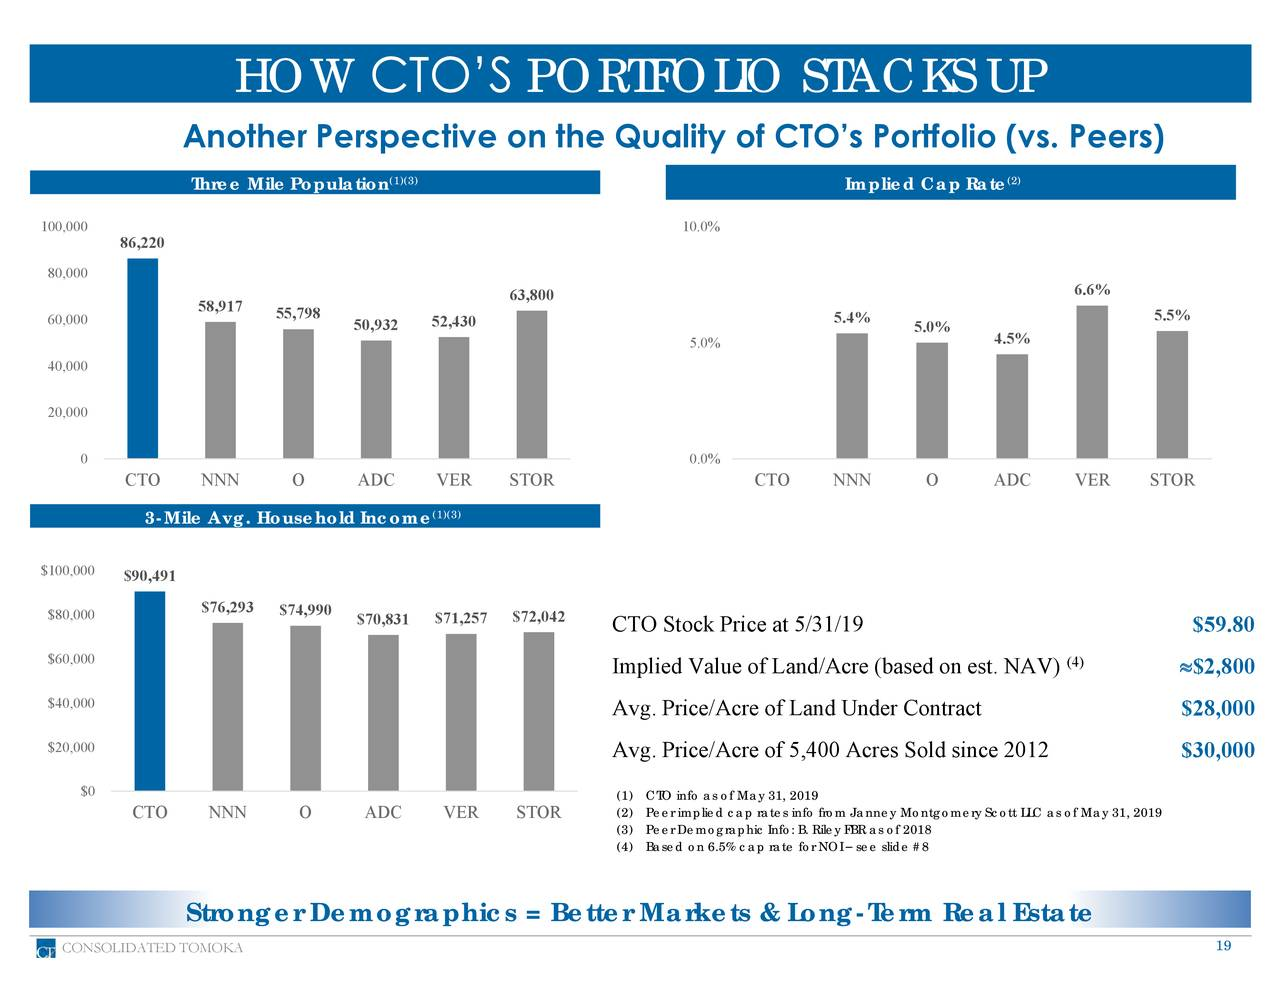 Another Perspective on the Quality of CTO's Portfolio (vs. Peers) Three MilePopulation (1)(3) Implied Cap Rate (2) 100,000 10.0% 86,220 80,000 6.6% 58,917 63,800 60,000 55,798 50,932 52,430 5.4% 5.0% 5.5% 5.0% 4.5% 40,000 20,000 0 0.0% CTO NNN O ADC VER STOR CTO NNN O ADC VER STOR (1)(3) 3-Mile Avg. HouseholdIncome $100,000 $90,491 $80,000 $76,293 $74,990 $72,042 $70,831 $71,257 CTO Stock Price at 5/31/19 $59.80 $60,000 Implied Value of Land/Acre (based on est. NAV) (4) $2,800 $40,000 Avg. Price/Acre of Land Under Contract $28,000 $20,000 Avg. Price/Acre of 5,400 Acres Sold since 2012 $30,000 $0 (1) CTO info as of May 31, 2019 CTO NNN O ADC VER STOR (2) Peer implied cap rates info from Janney Montgomery Scott LLC as of May 31, 2019 (3) Peer Demographic Info: B. Riley FBR as of 2018 (4) Based on 6.5% cap rate for NOI – see slide #8 Stronger Demographics = Better Markets & Long-Term Real Estate CONSOLIDATED TOMOKA 19